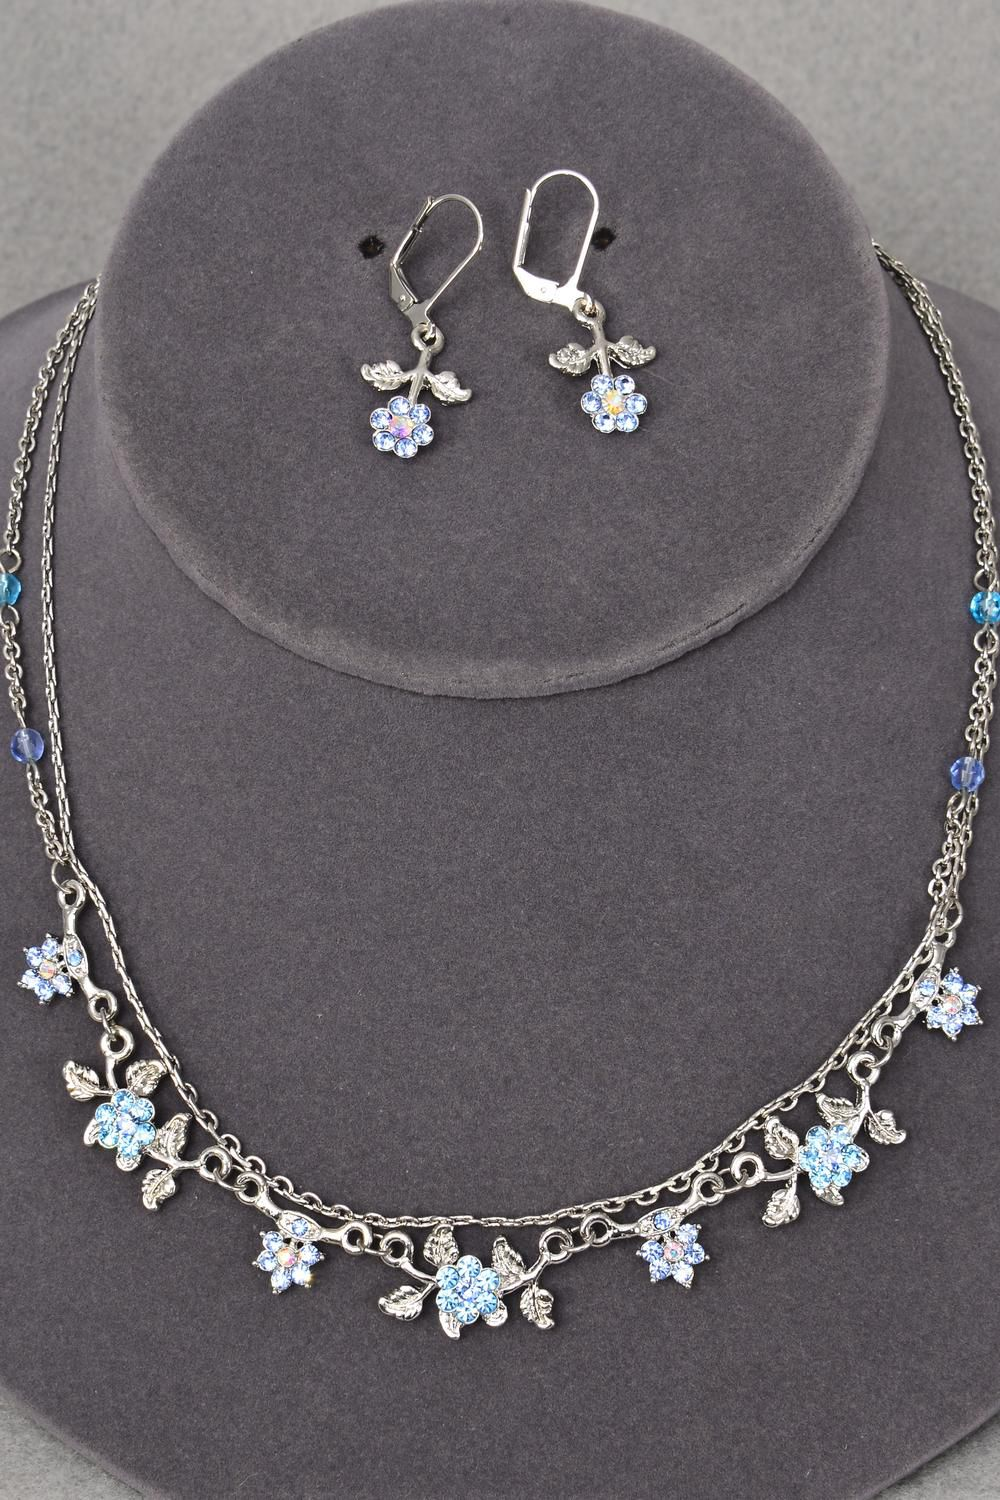 "Necklace Sets Rhinestone Flowers Post/Sets **POST** 18"" Long,Display Card & OPP Bag & UPC Code,Choose Colors"